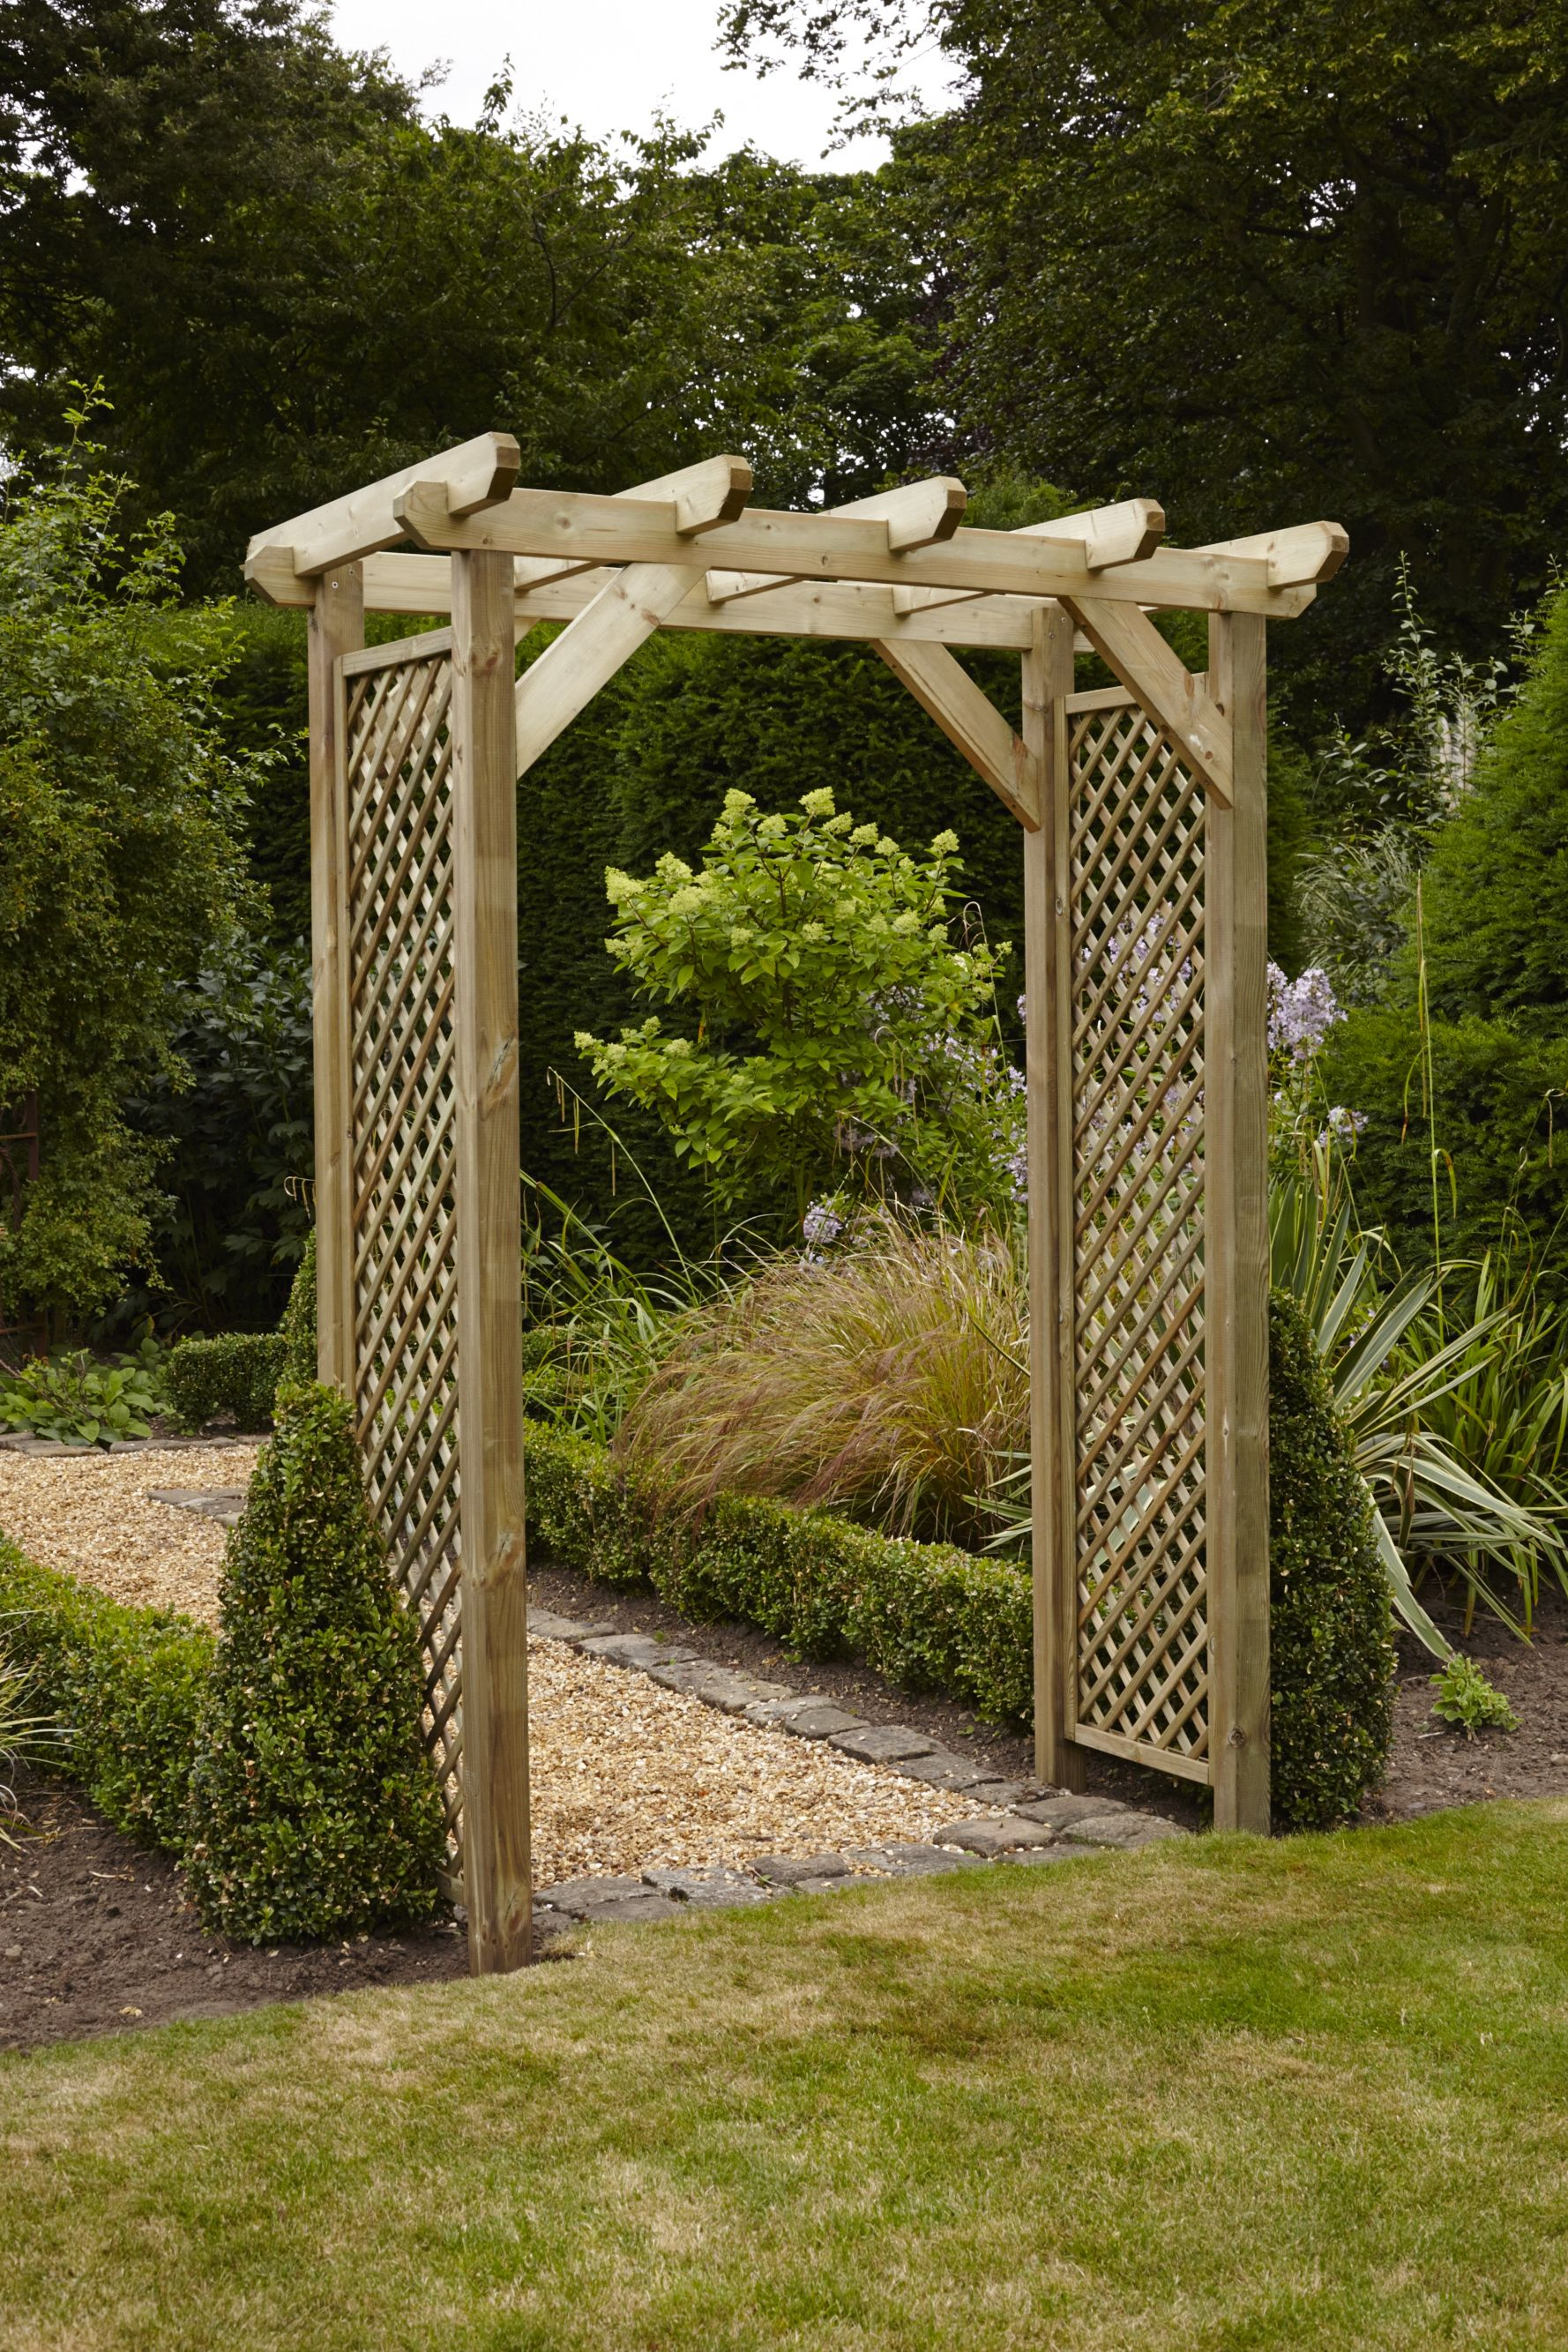 Anchor Fast Squared Lattice Arch Simply Wood Garden Arches